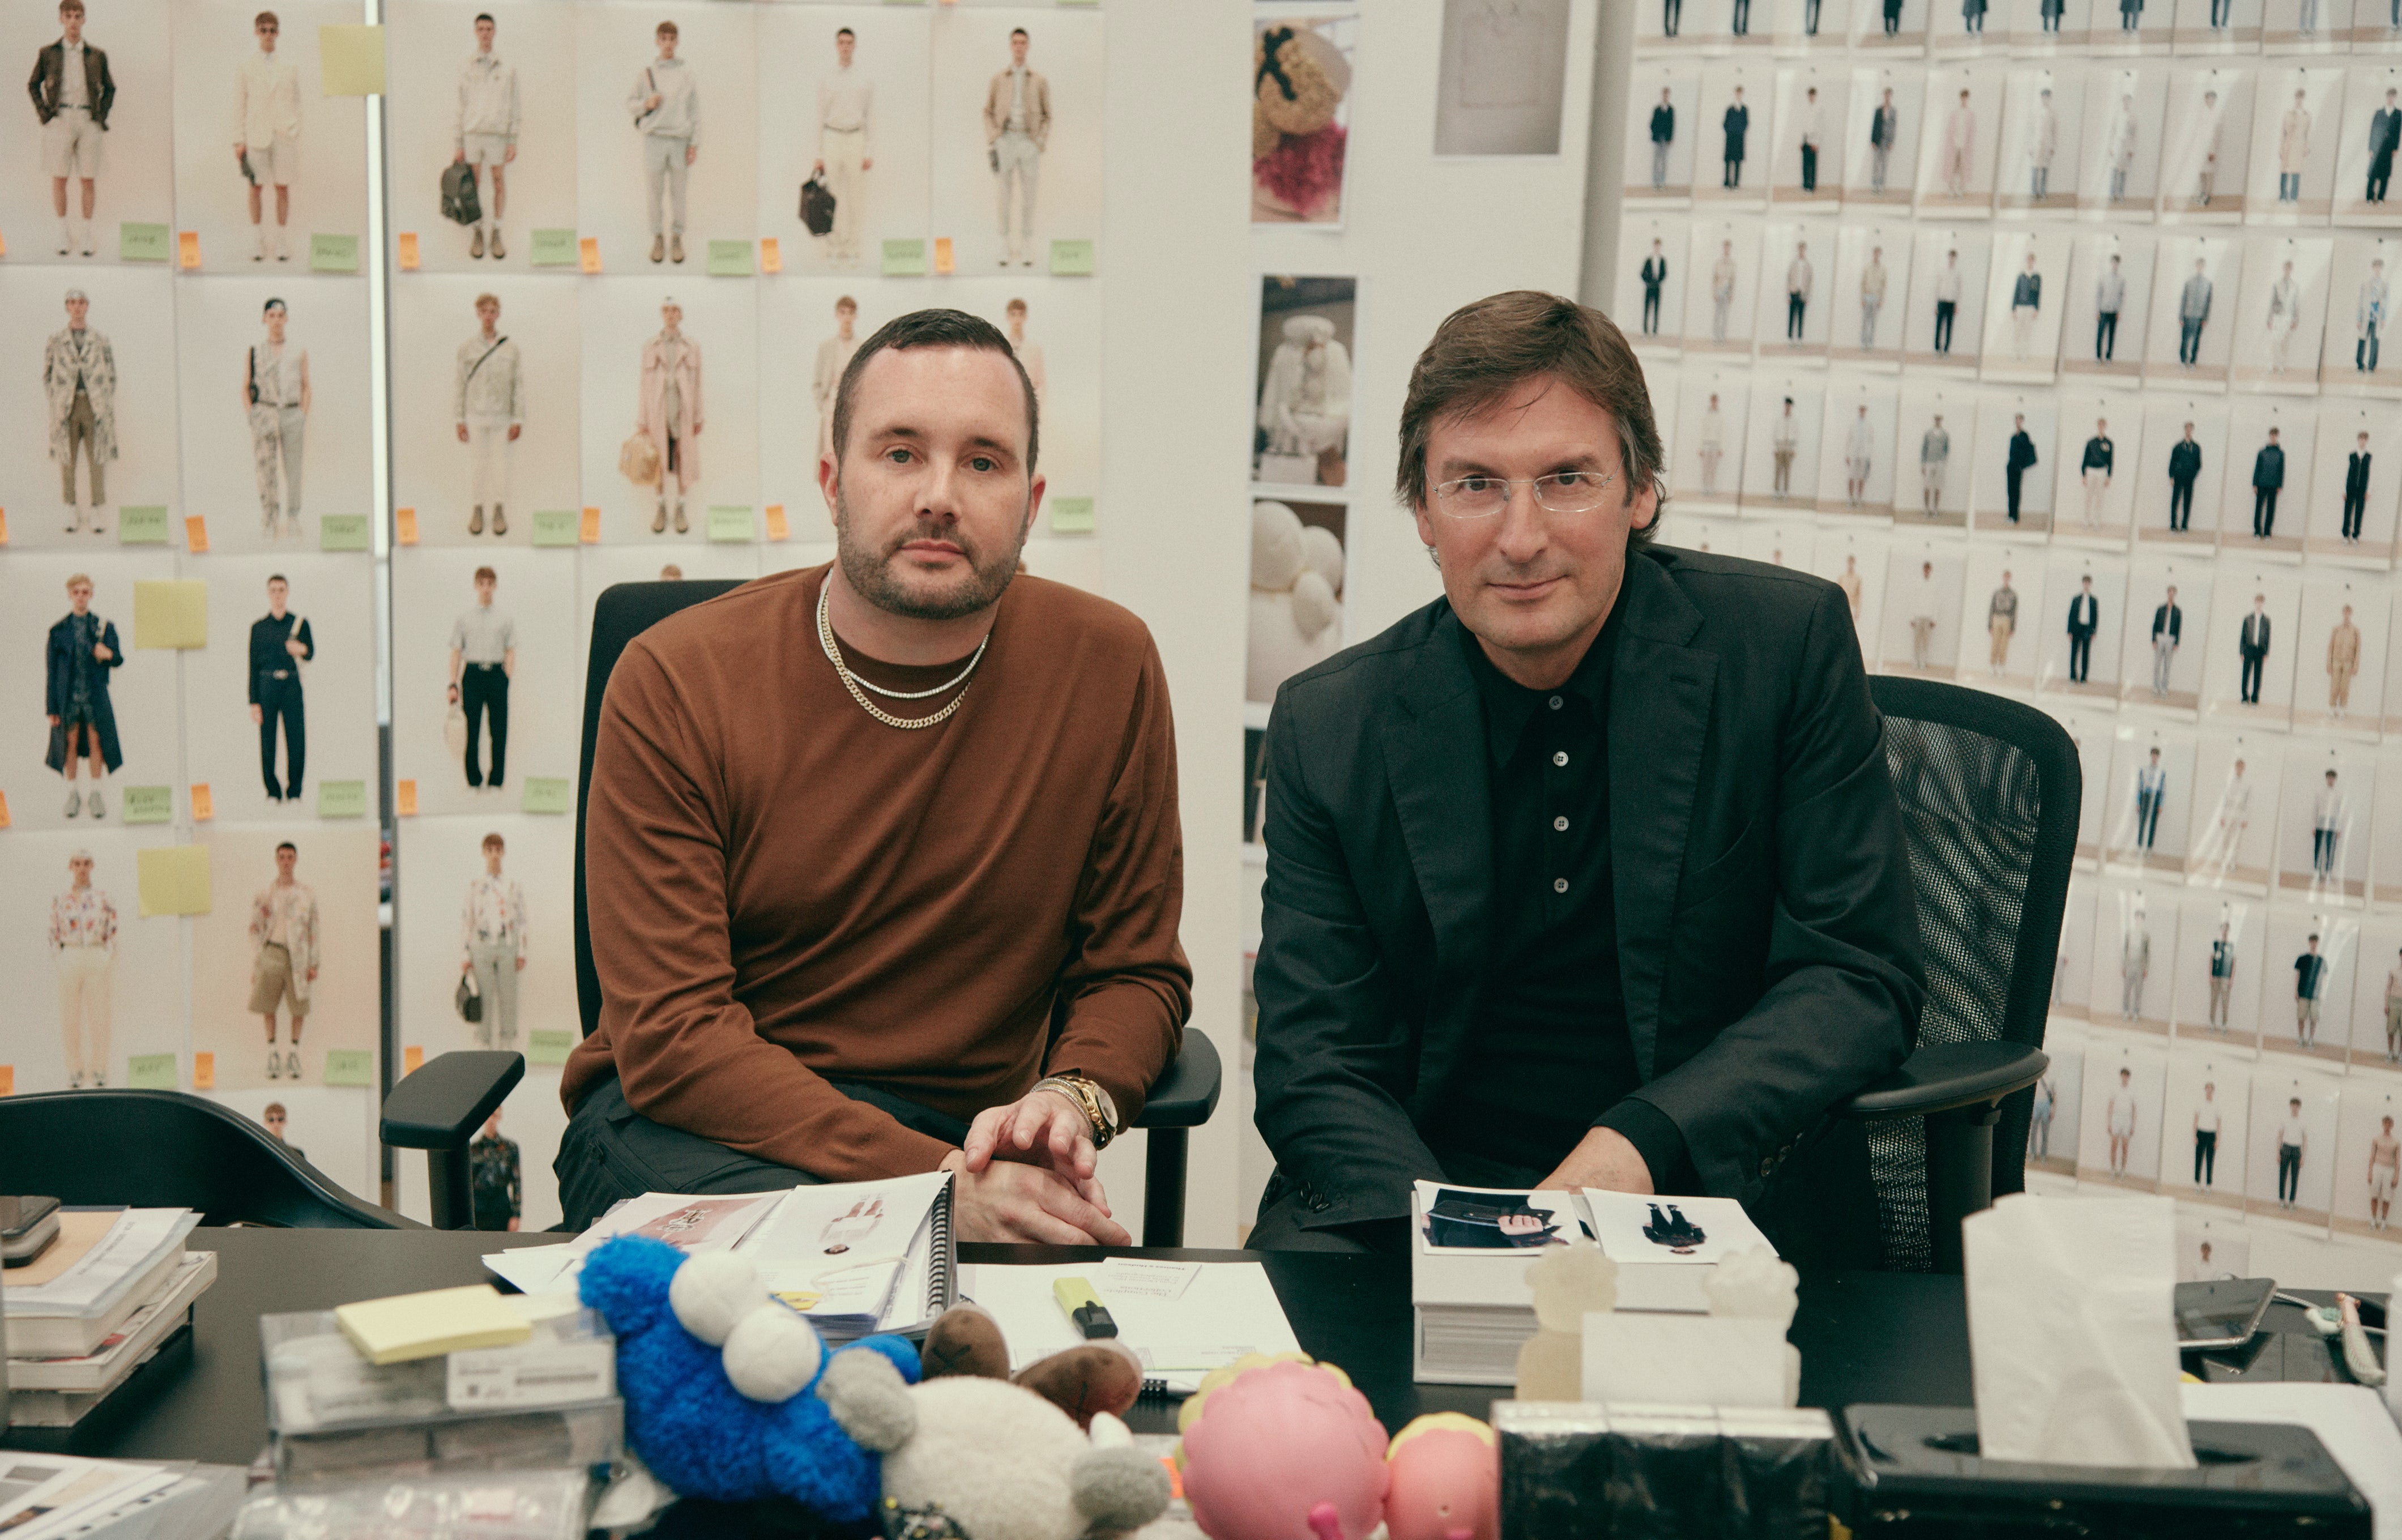 Pietro Beccari and Kim Jones photographed by Jackie Nickerson | Source: Courtesy